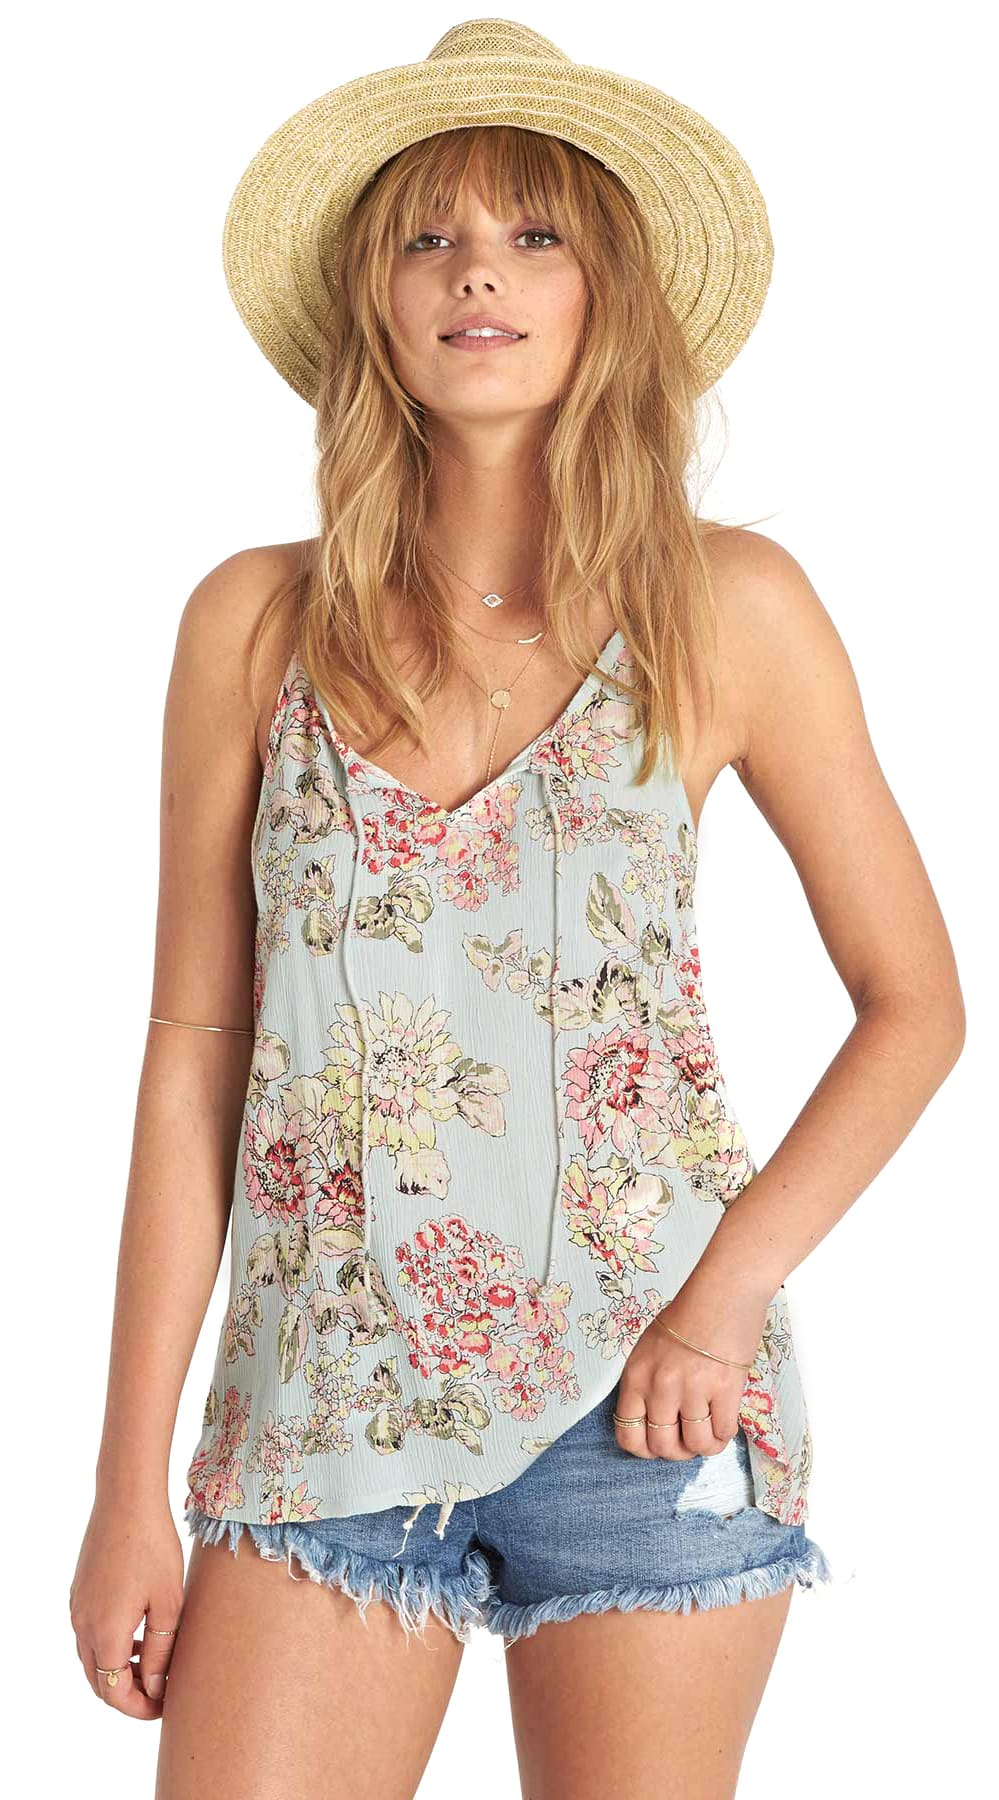 Top Women S Fashion Magazines: Billabong Spring Seas Tank Top